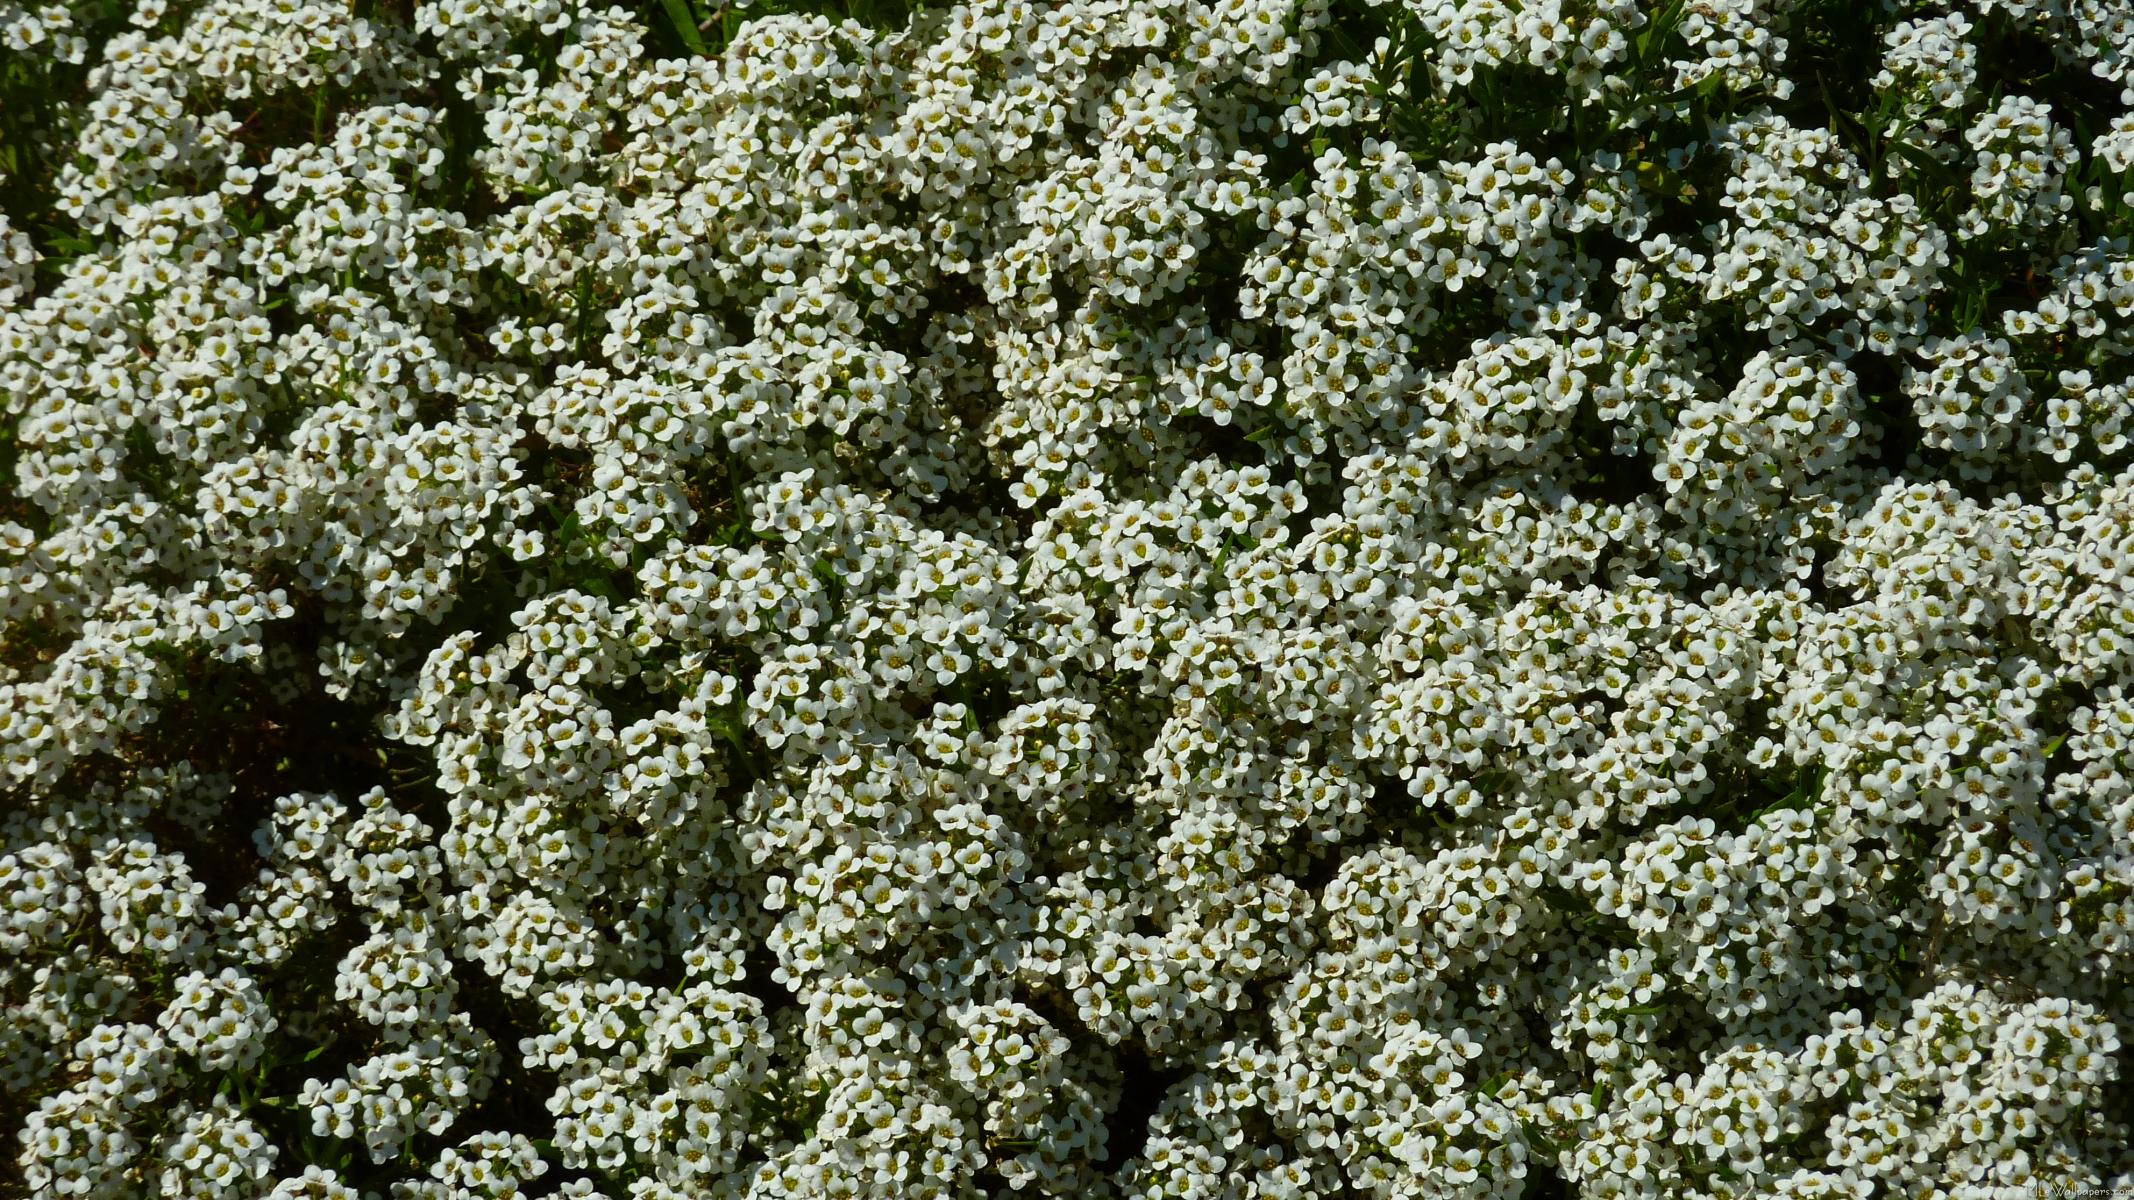 Small white flower ground cover images flower decoration ideas small white flower ground cover choice image flower decoration ideas small white flower ground cover images izmirmasajfo